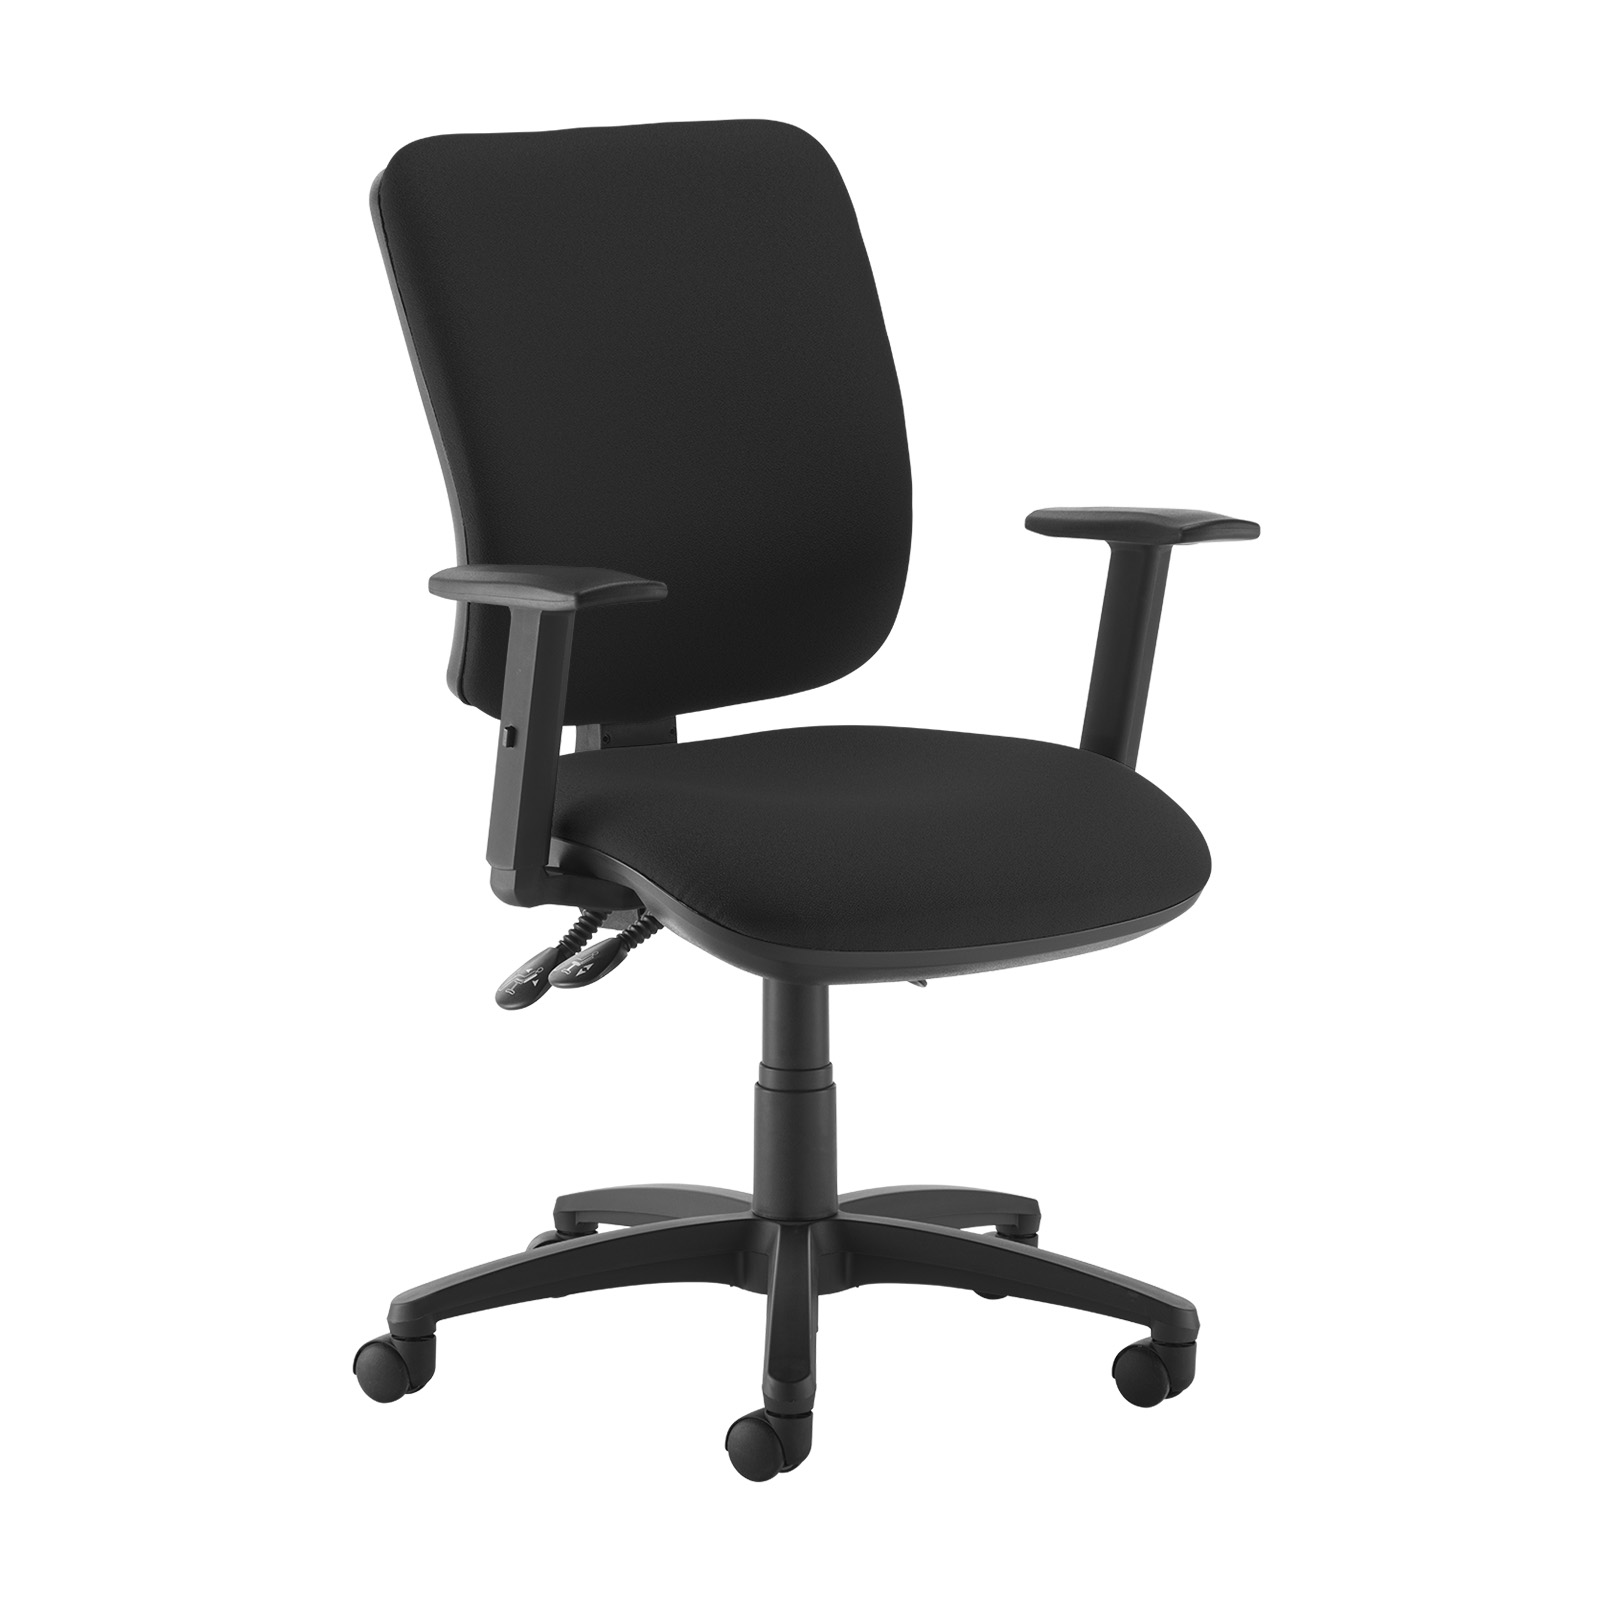 Senza high back operator chair with adjustable arms - black